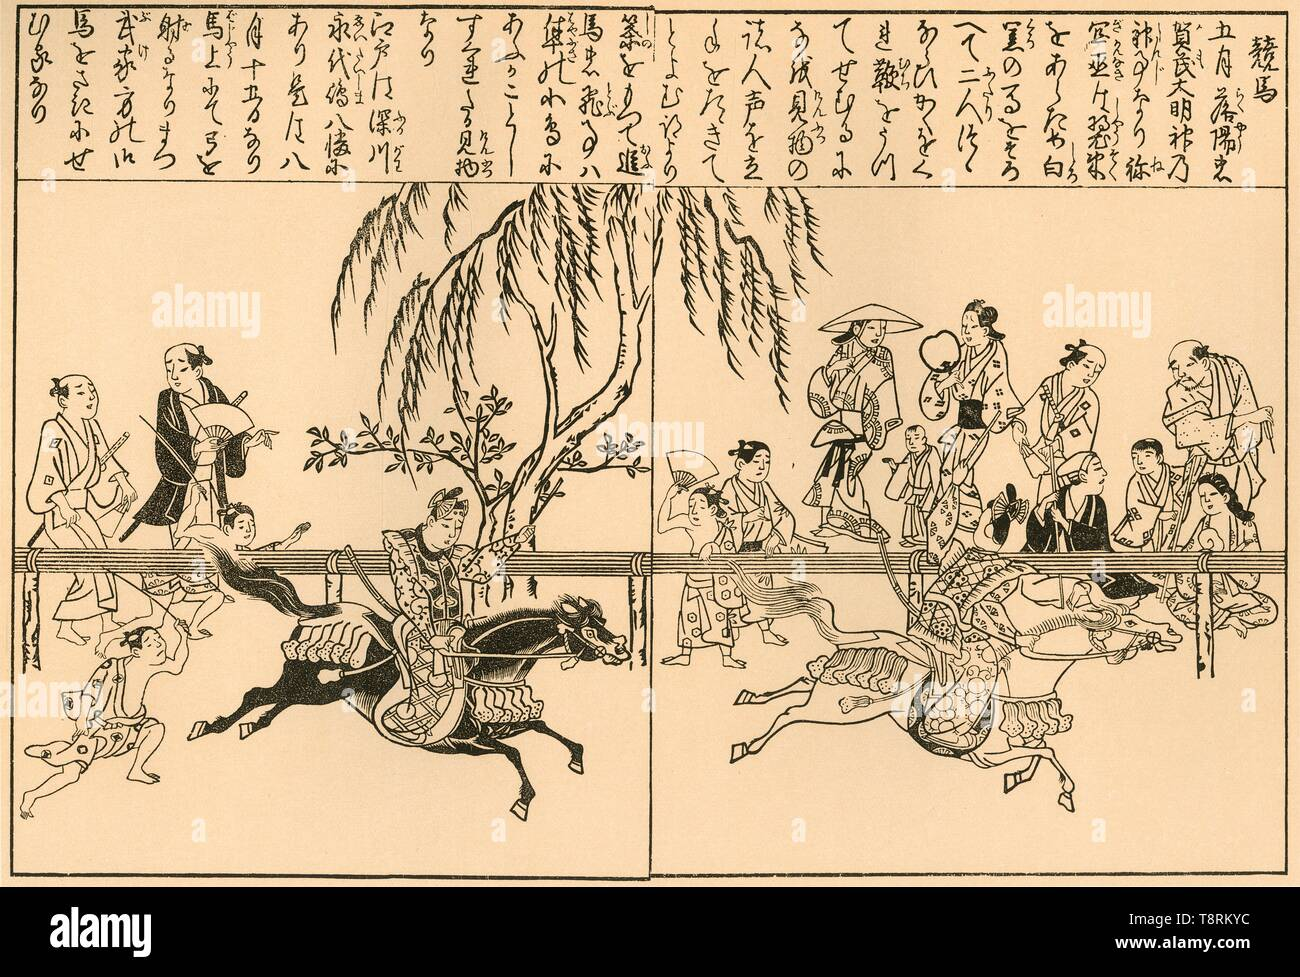 """'Horse-racing at the Kamo Festival', 1692-1696, (1924). From the """"Yamato Kosatu Esho"""" by Ishikawa Ryusen, [1692-1696]. Published in """"Block Printing & Book Illustration in Japan"""", by Louise Norton Brown. [George Routledge & Sons, Ltd., E. P. Dutton & Co., London & New York, 1924] - Stock Image"""